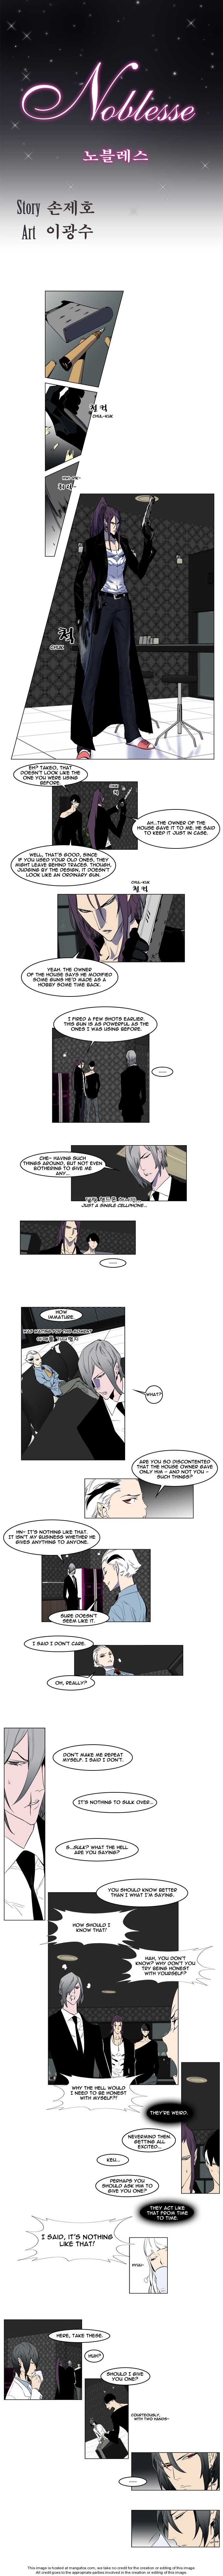 Noblesse 146 Page 1